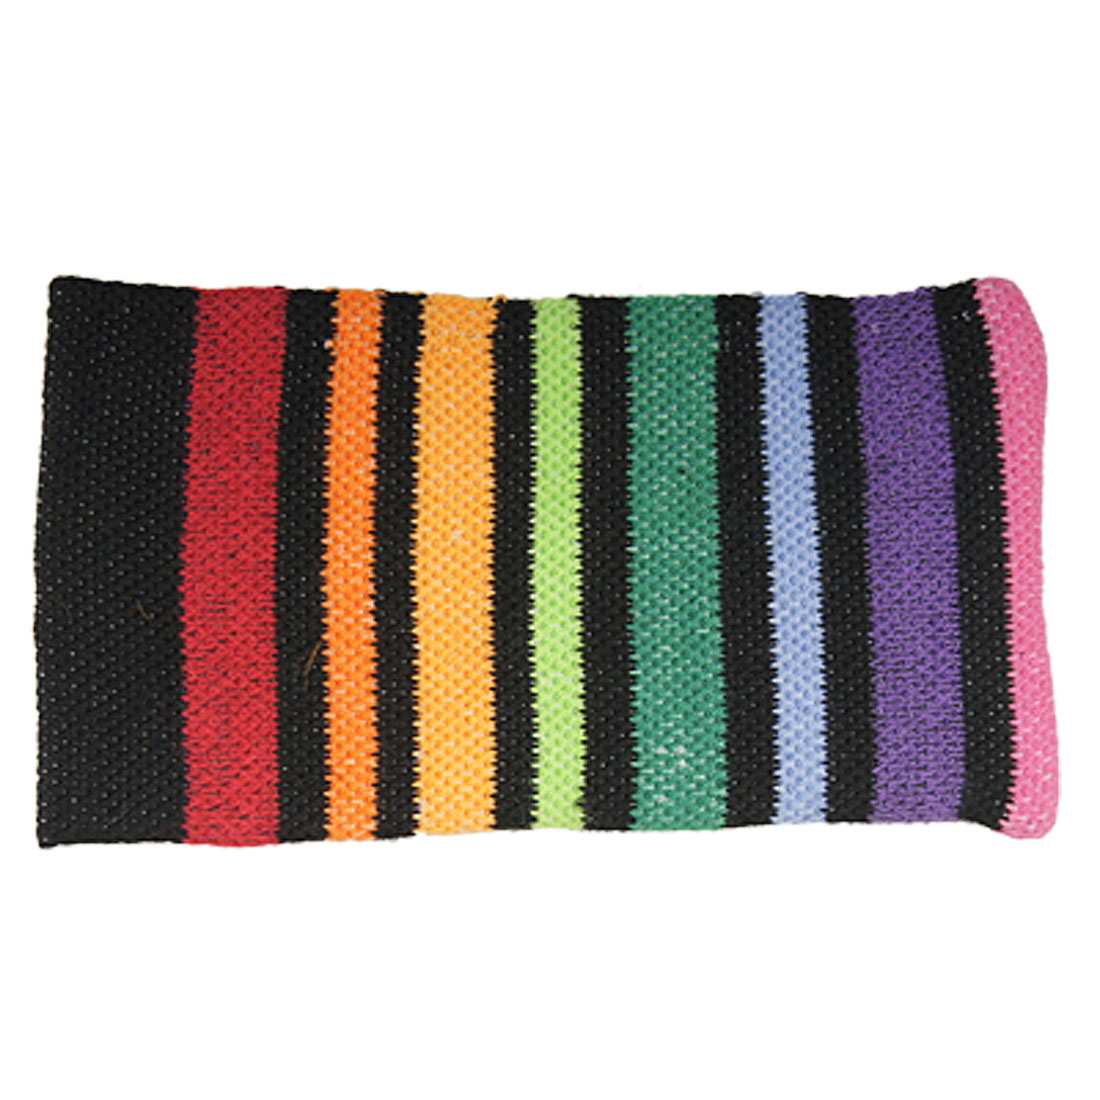 Black Cuffs Multi Color Stripes Knitted Elastic Pouch for Cell Phone